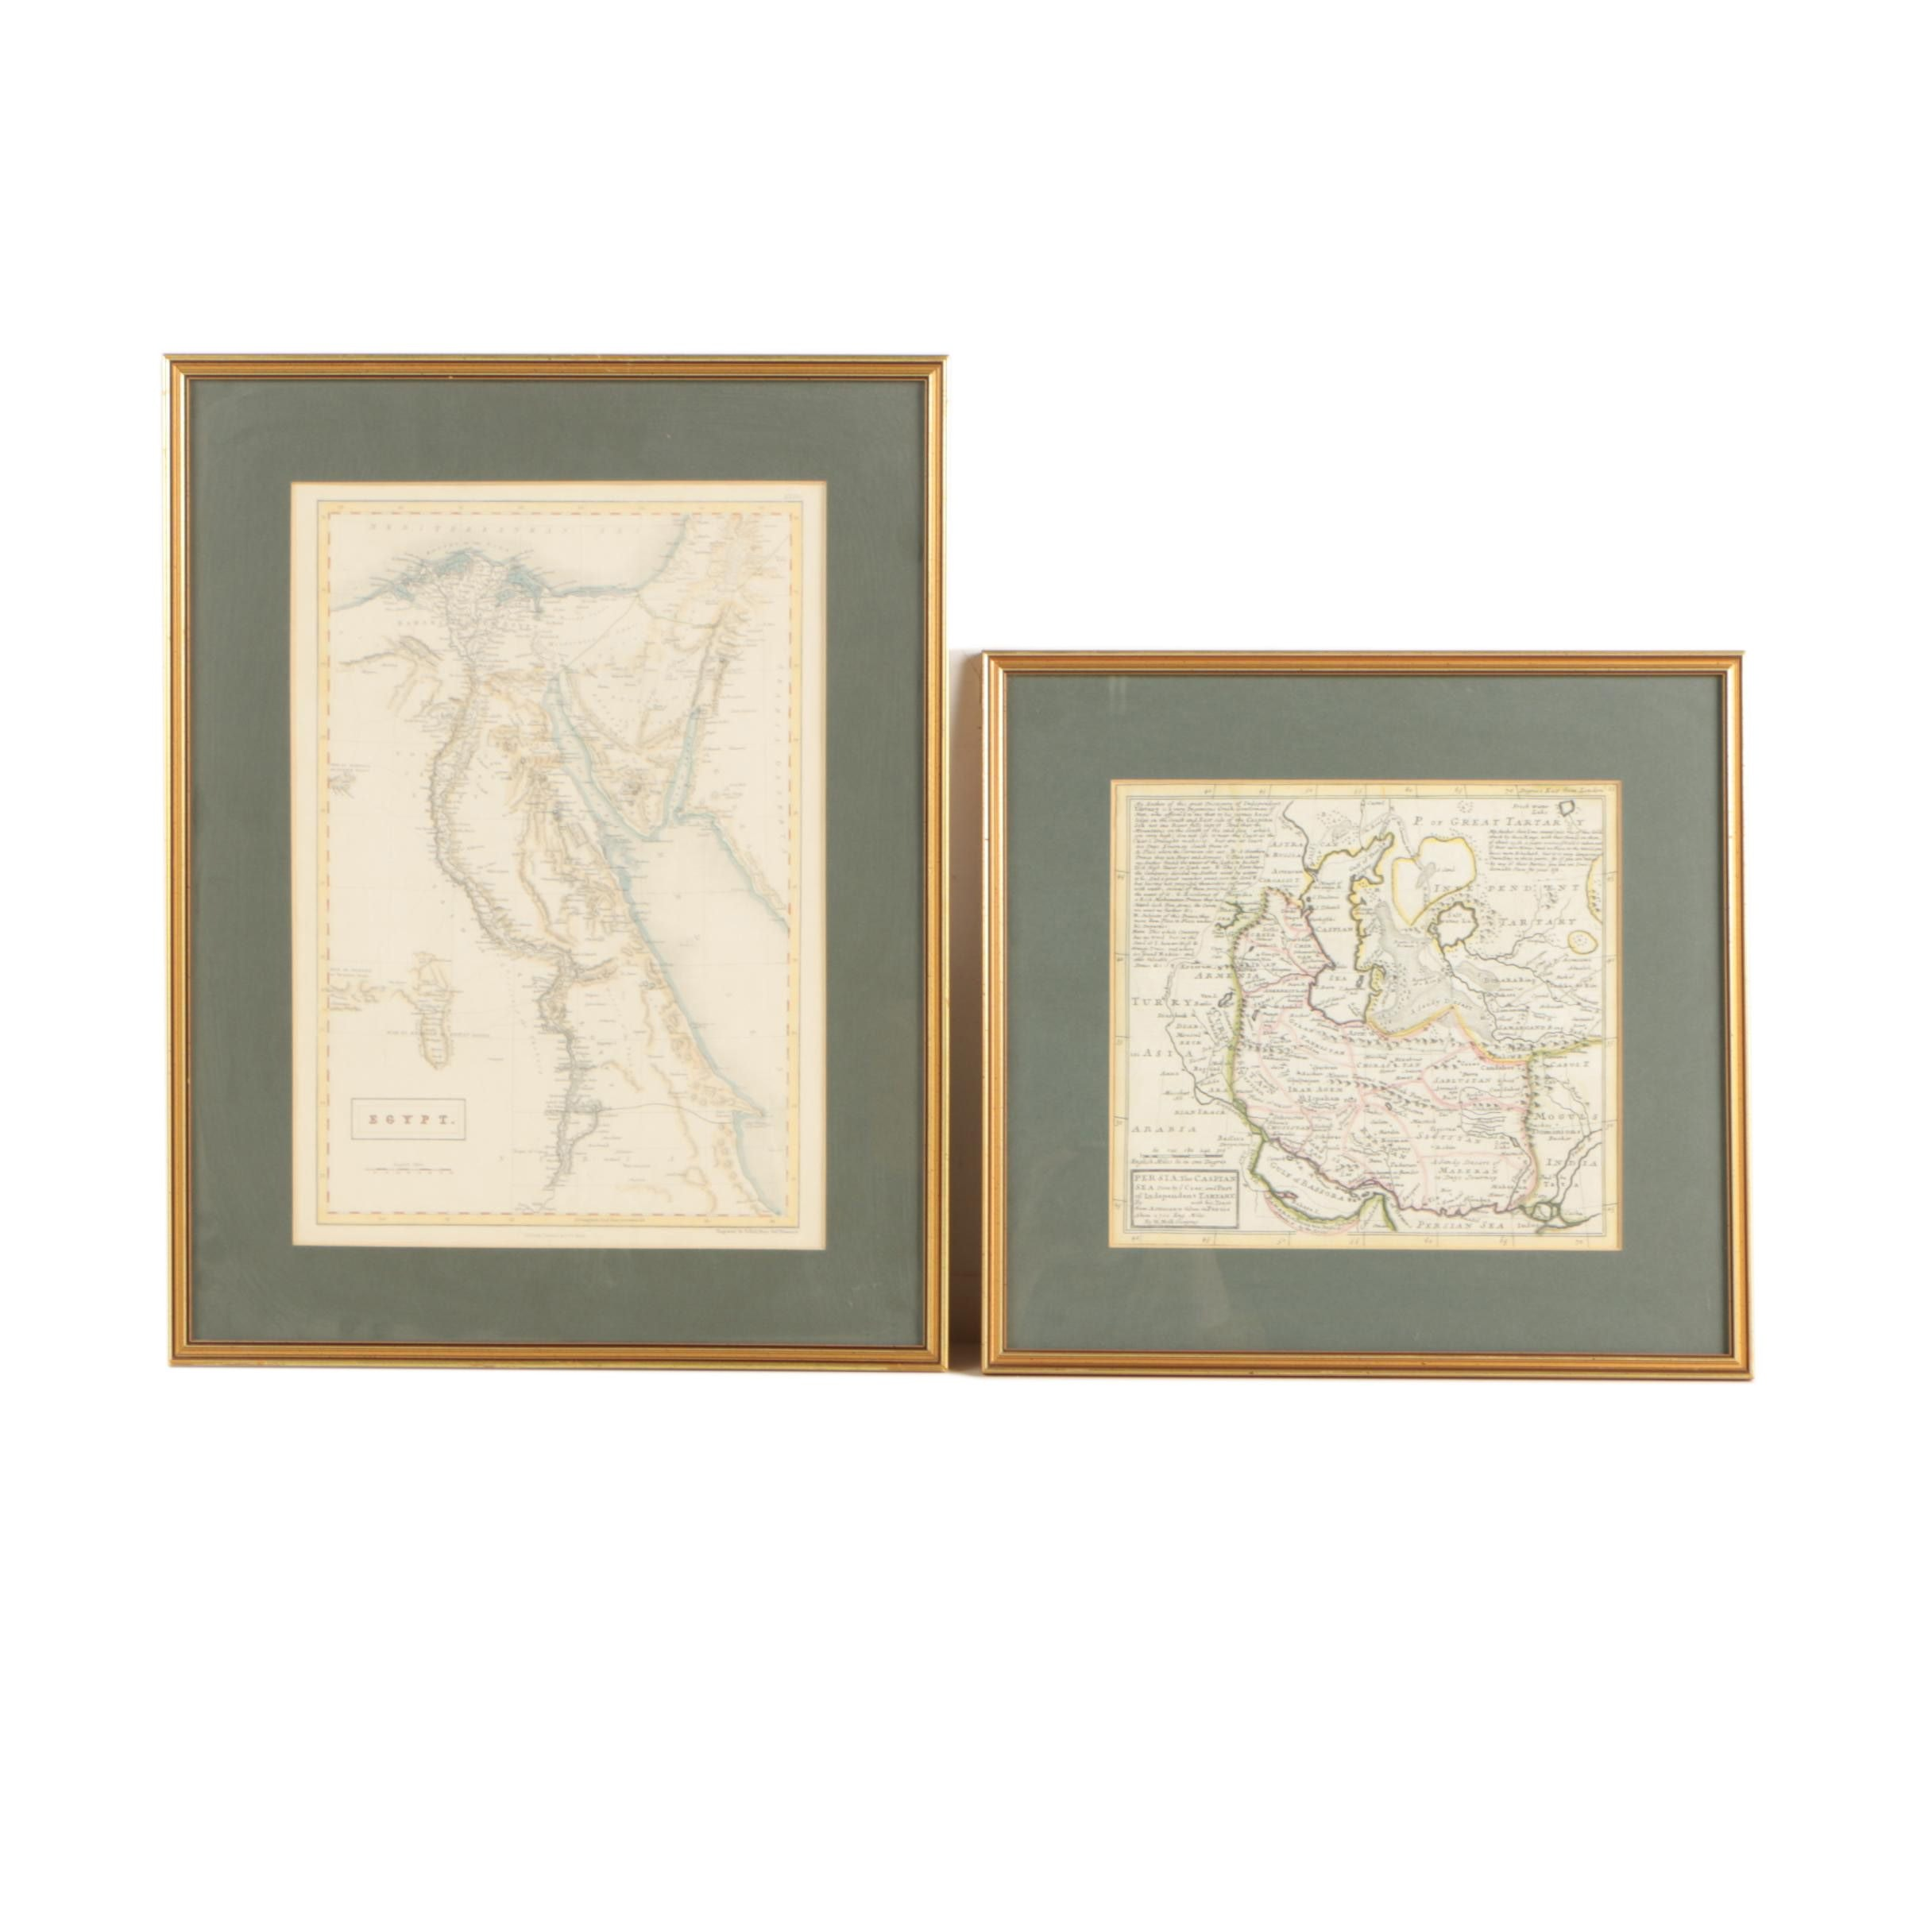 Two Antique Hand Colored Engraved Maps